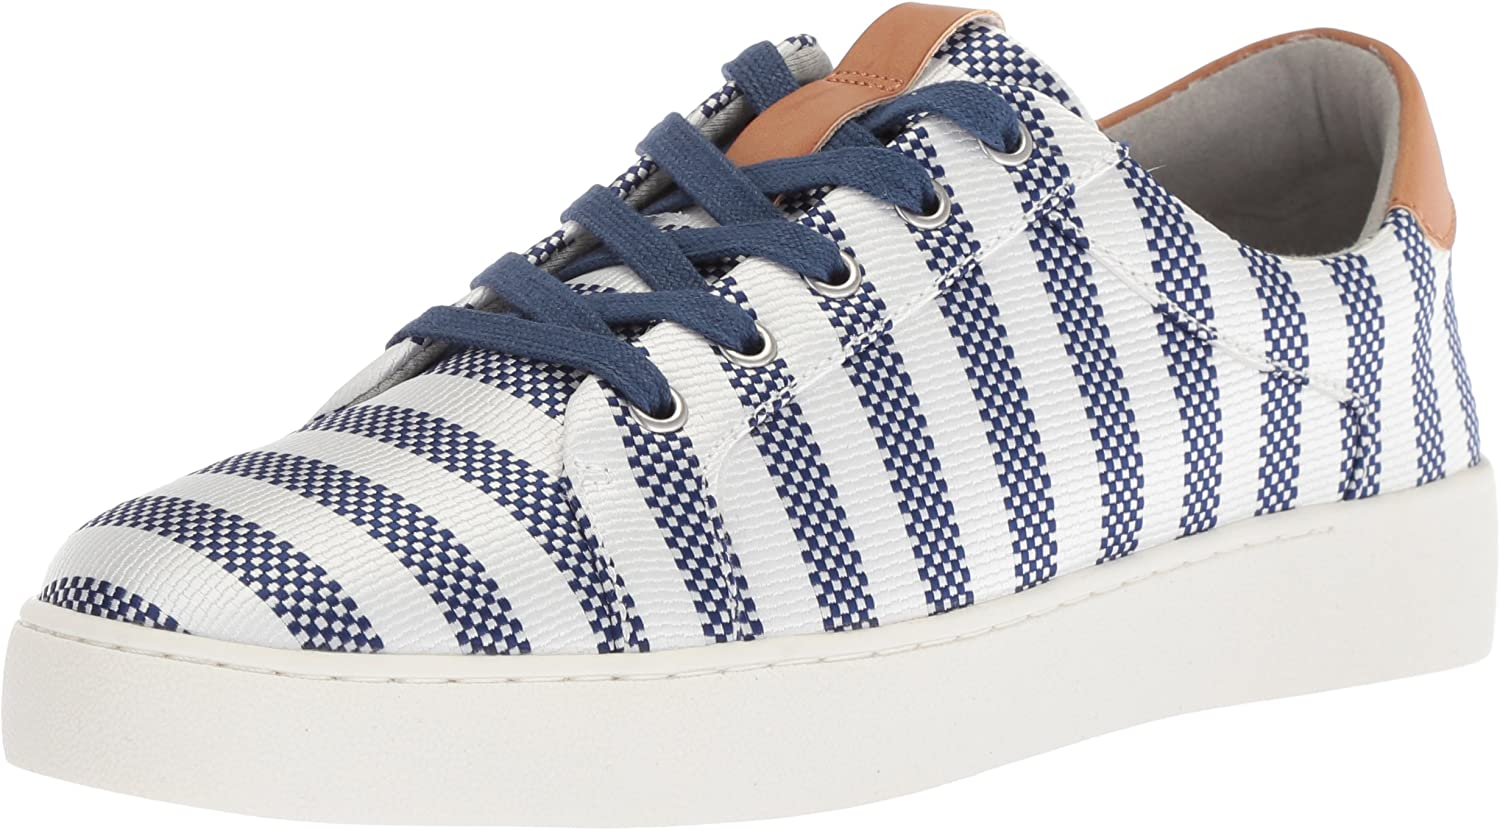 Nine West Womens Pereo Fabric Sneaker